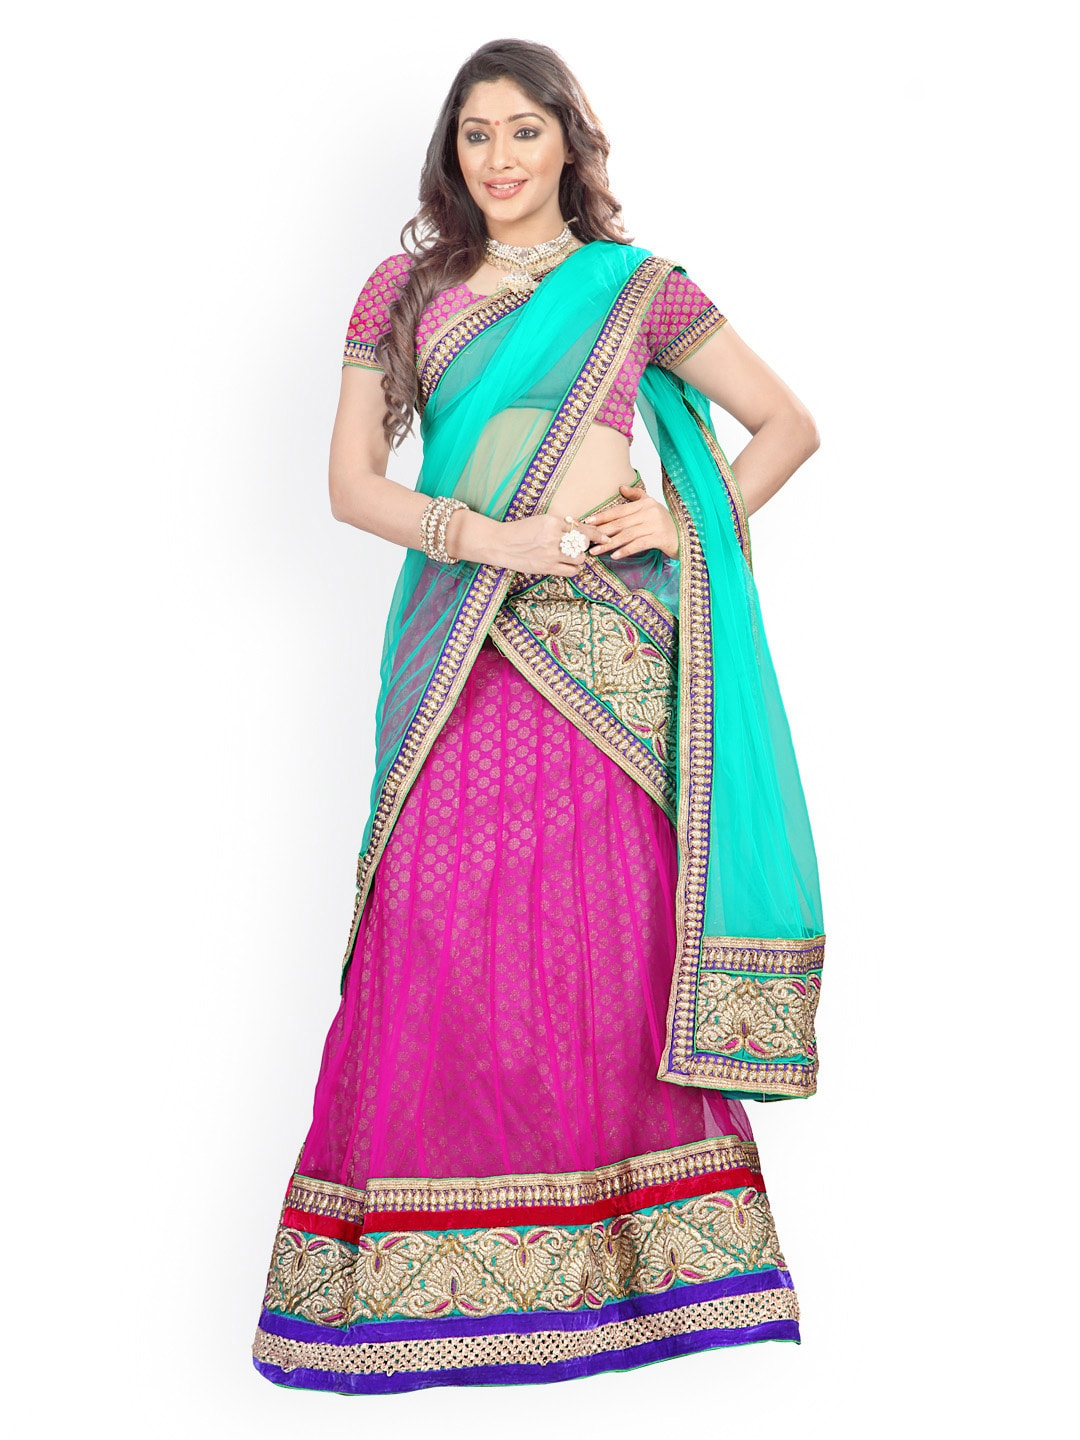 Florence Pink & Green Semi-Stitched Brasso Net Lehenga Choli with Dupatta